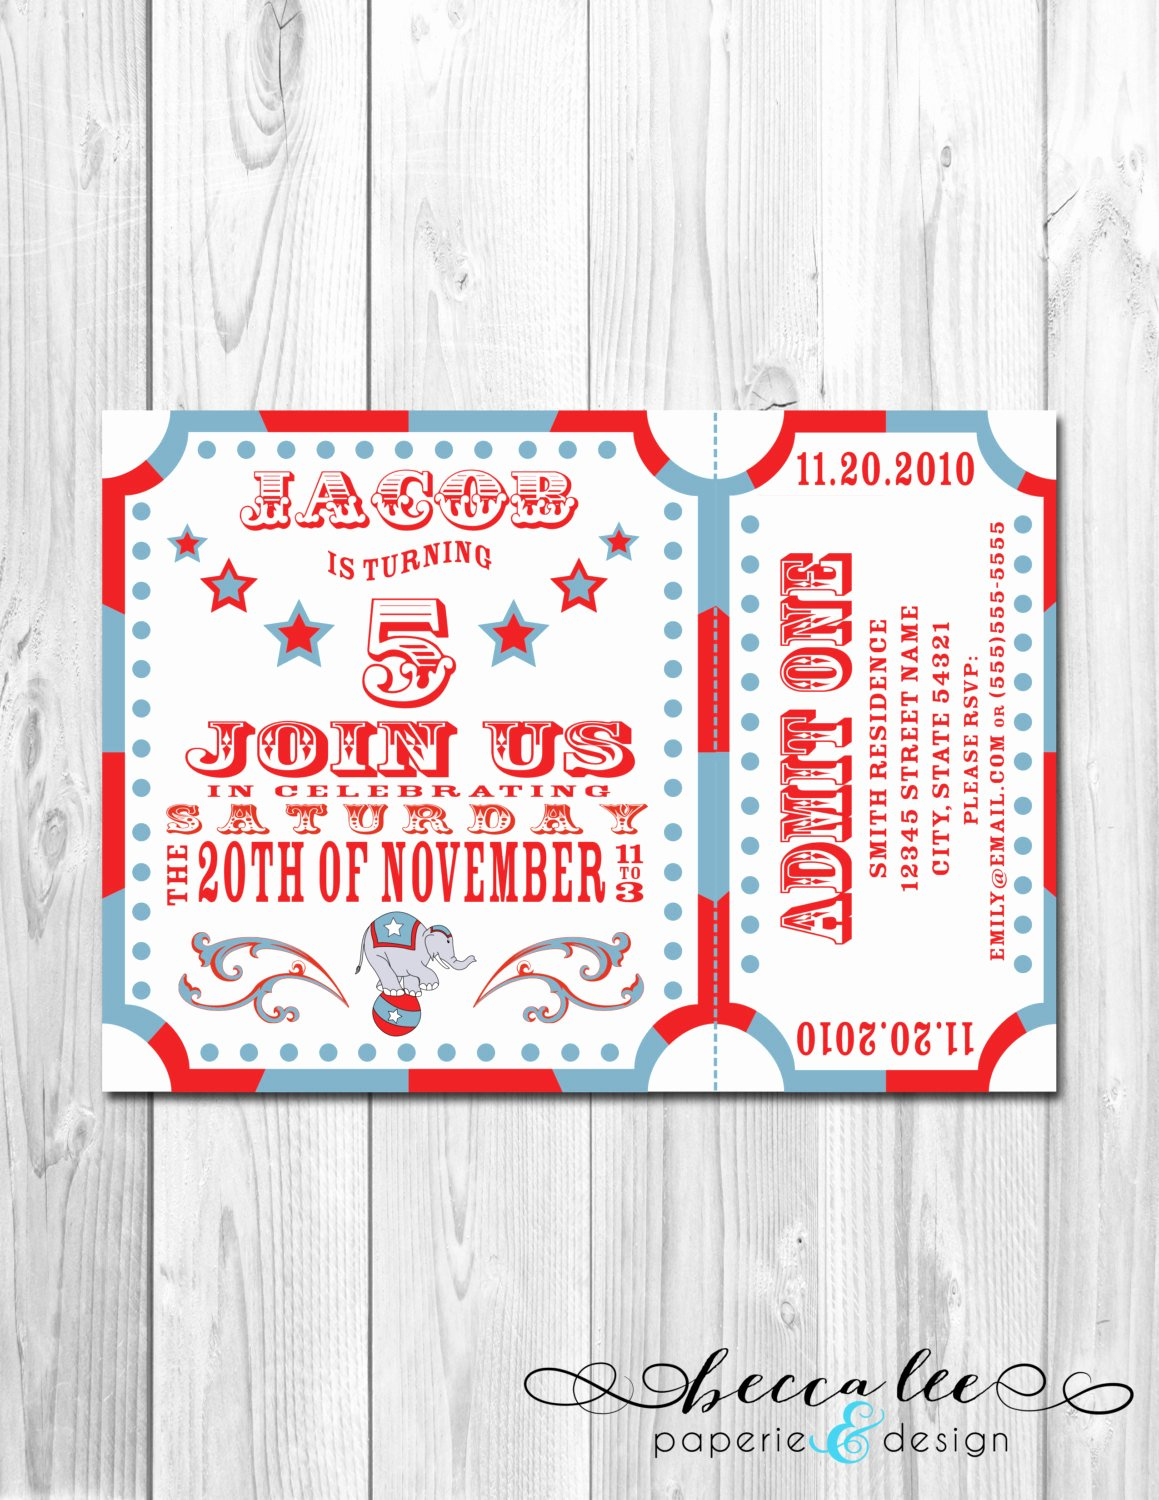 Carnival theme Party Invitations Inspirational Chandeliers & Pendant Lights